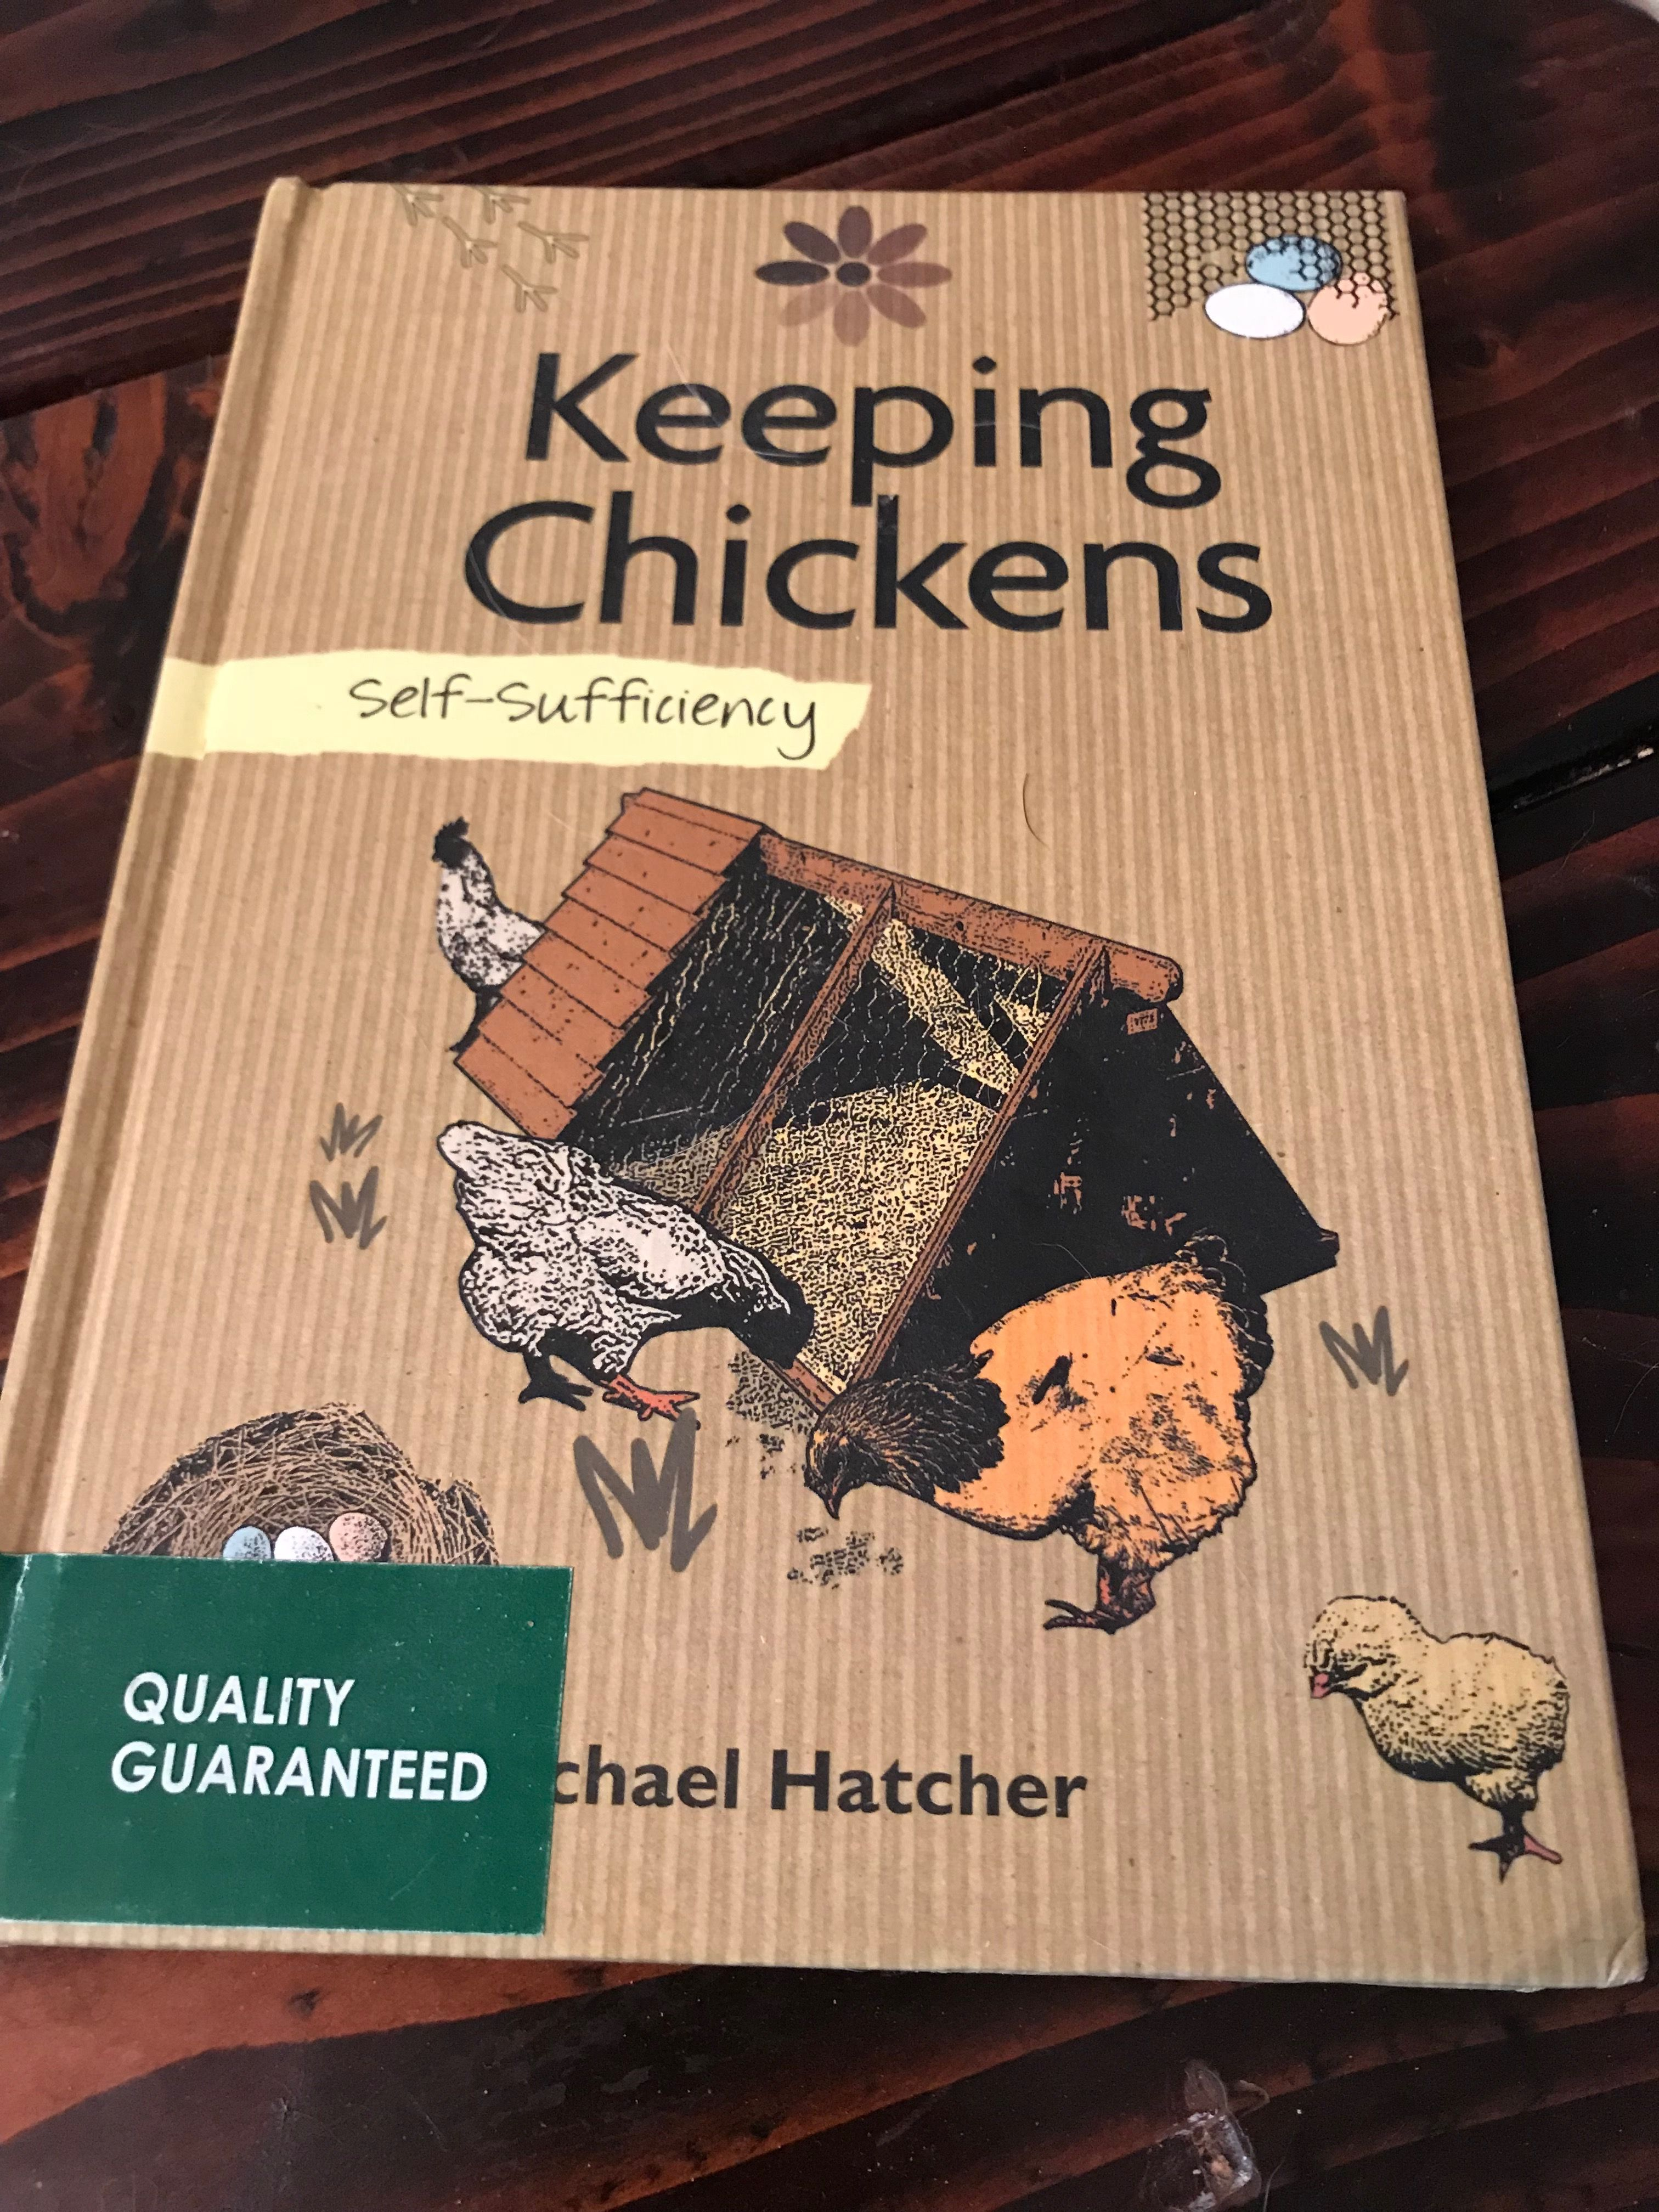 My first book on chickens so helpful keeping chickens